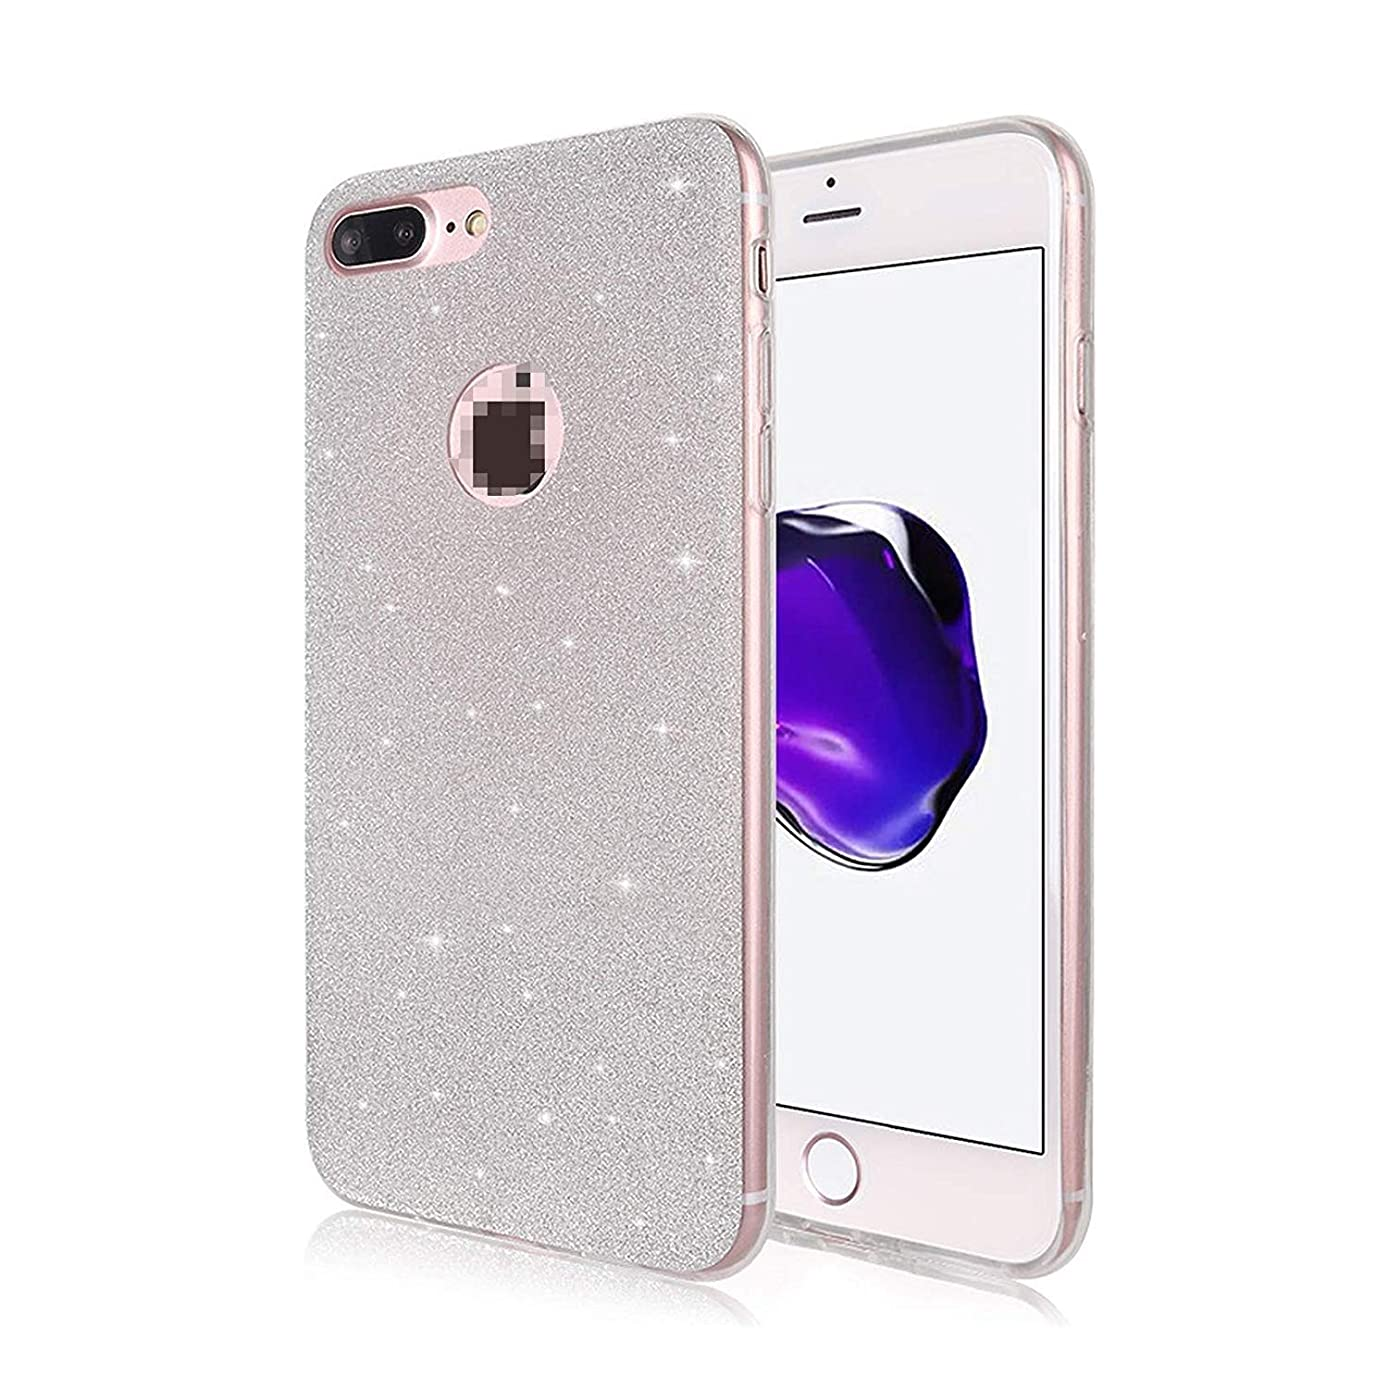 Soft Silicone Case for iPhone 6 S 6S 5 5S 5SE XS Max XR X 7 8 Plus 6Plus 7Plus 8Plus TPU Cell Phone Back Cover Casing,Gold,for iPhone 7 Plus,Silver,ForiPhoneX10